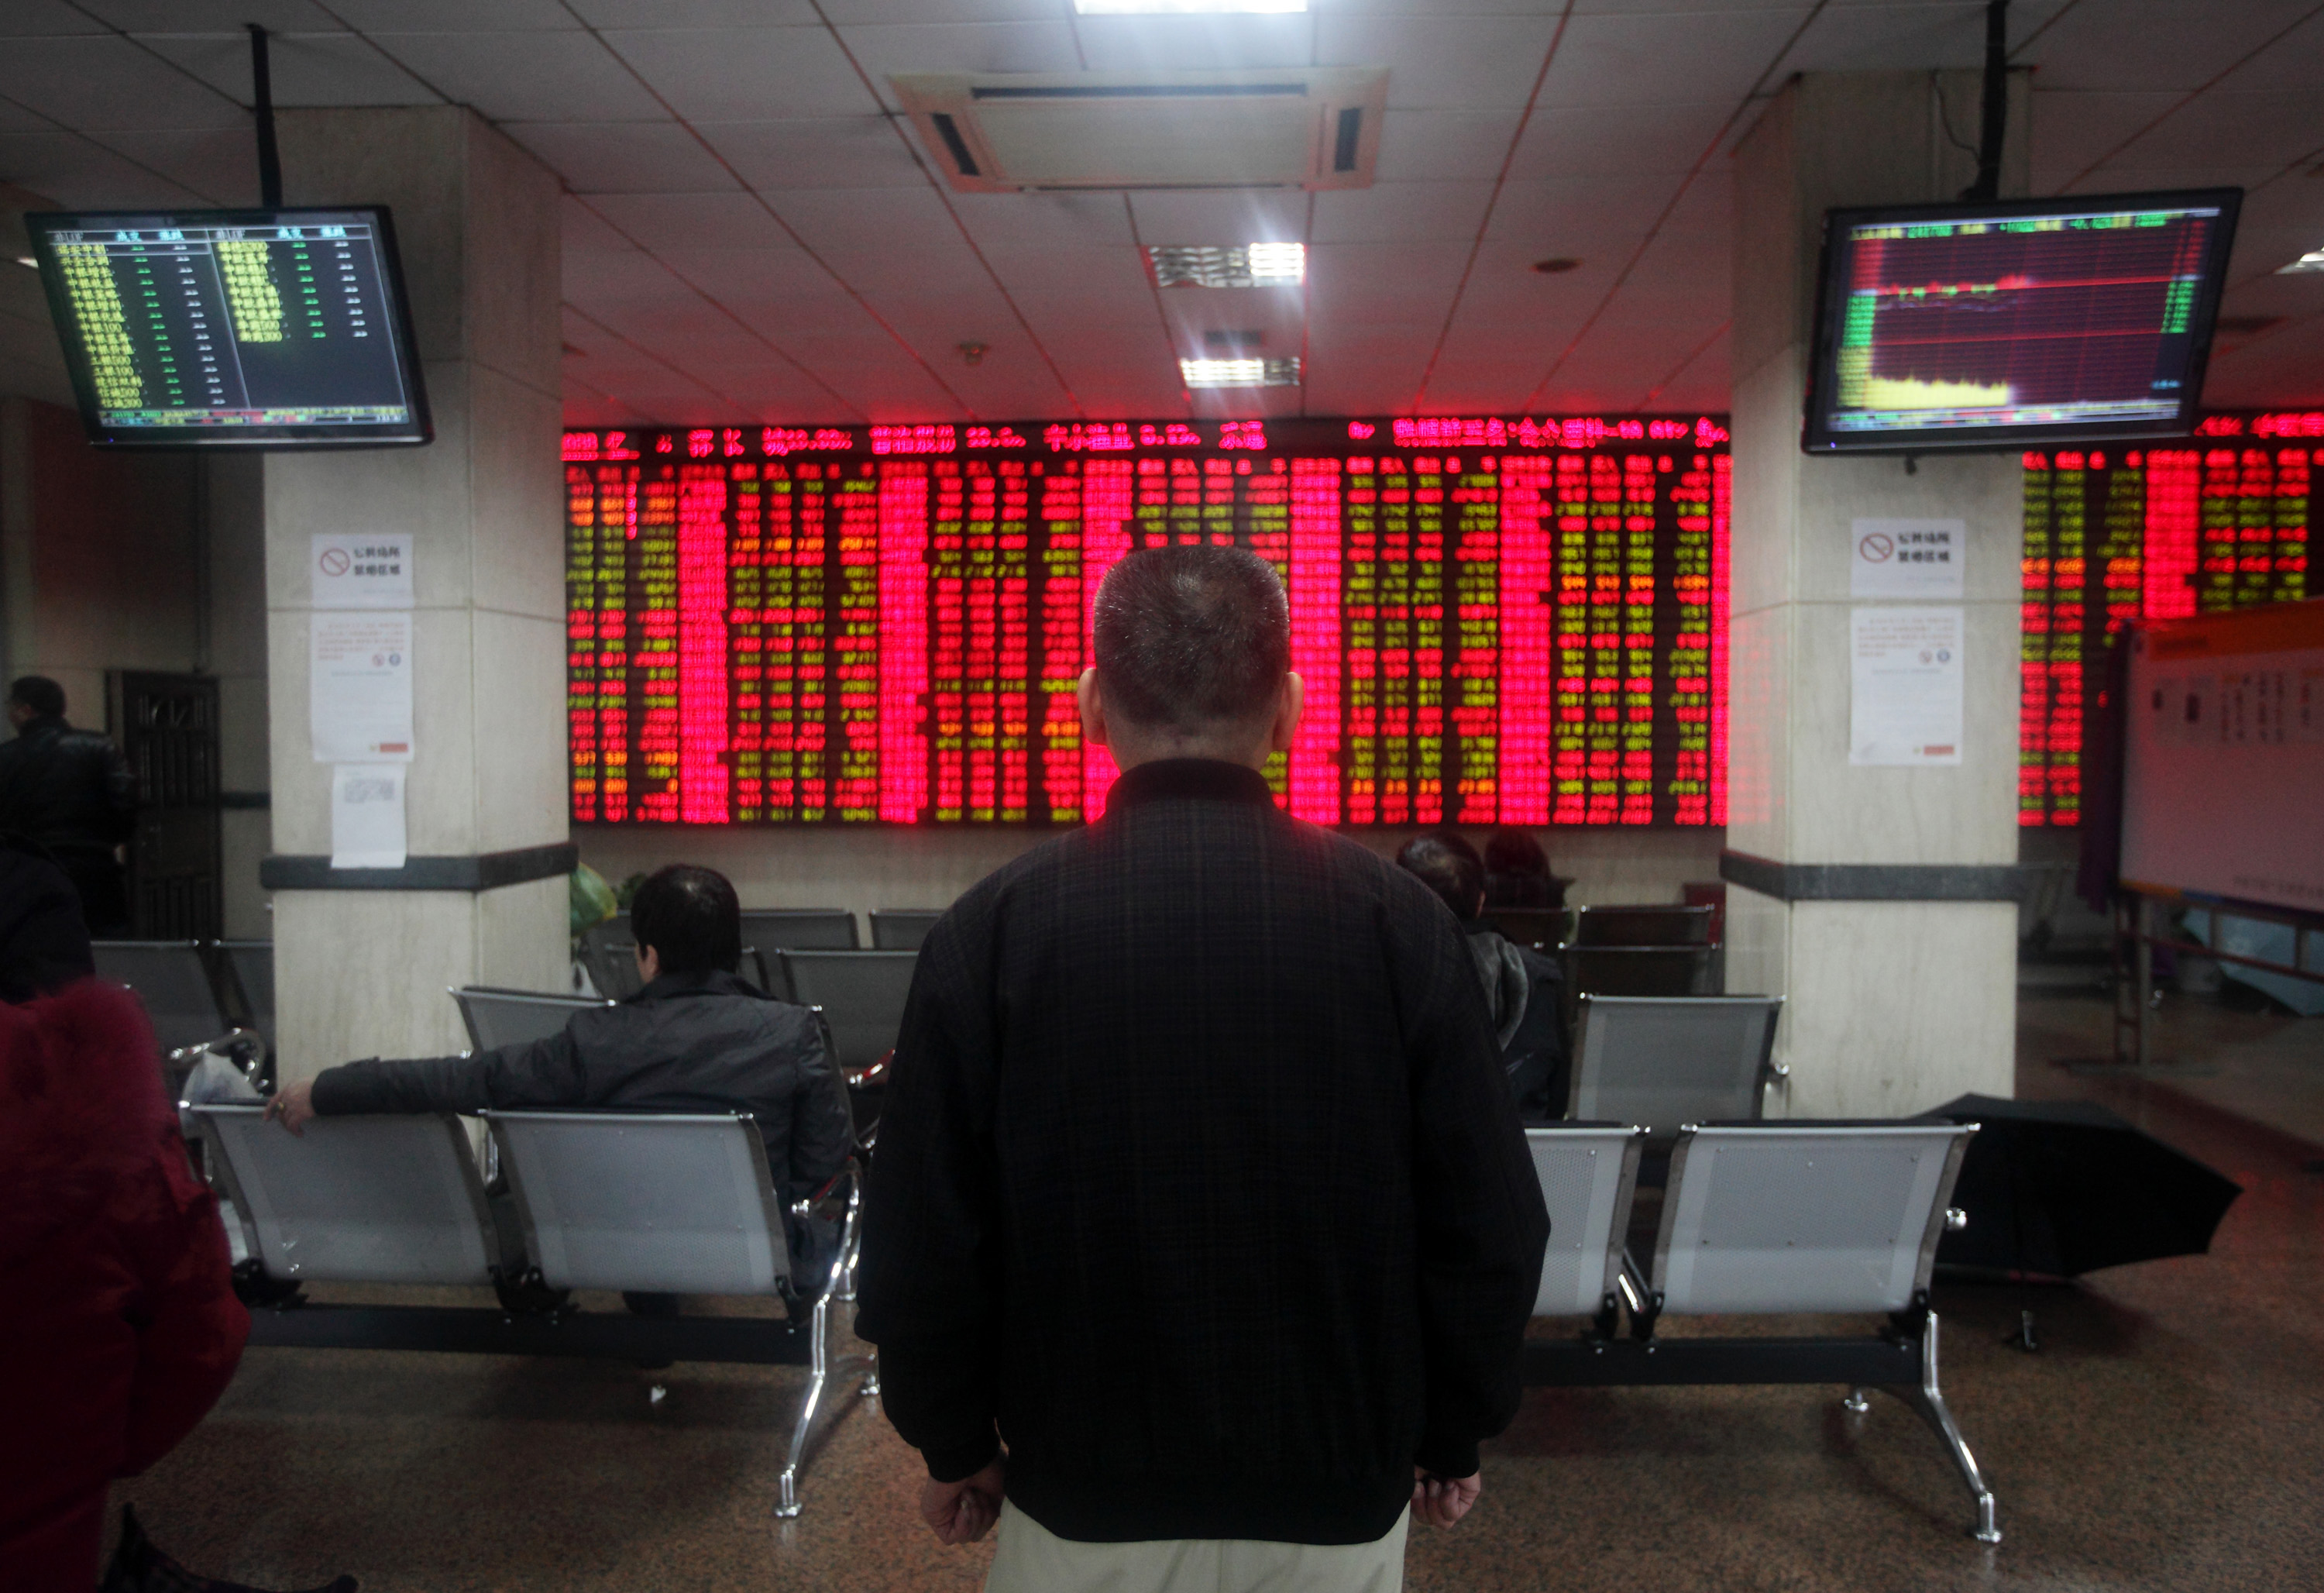 Customers watch share prices on an electronics stock board at a security firm in Shanghai, China, on Tuesday, Feb. 5, 2013. Photographer: Tomohiro Ohsumi/Bloomberg